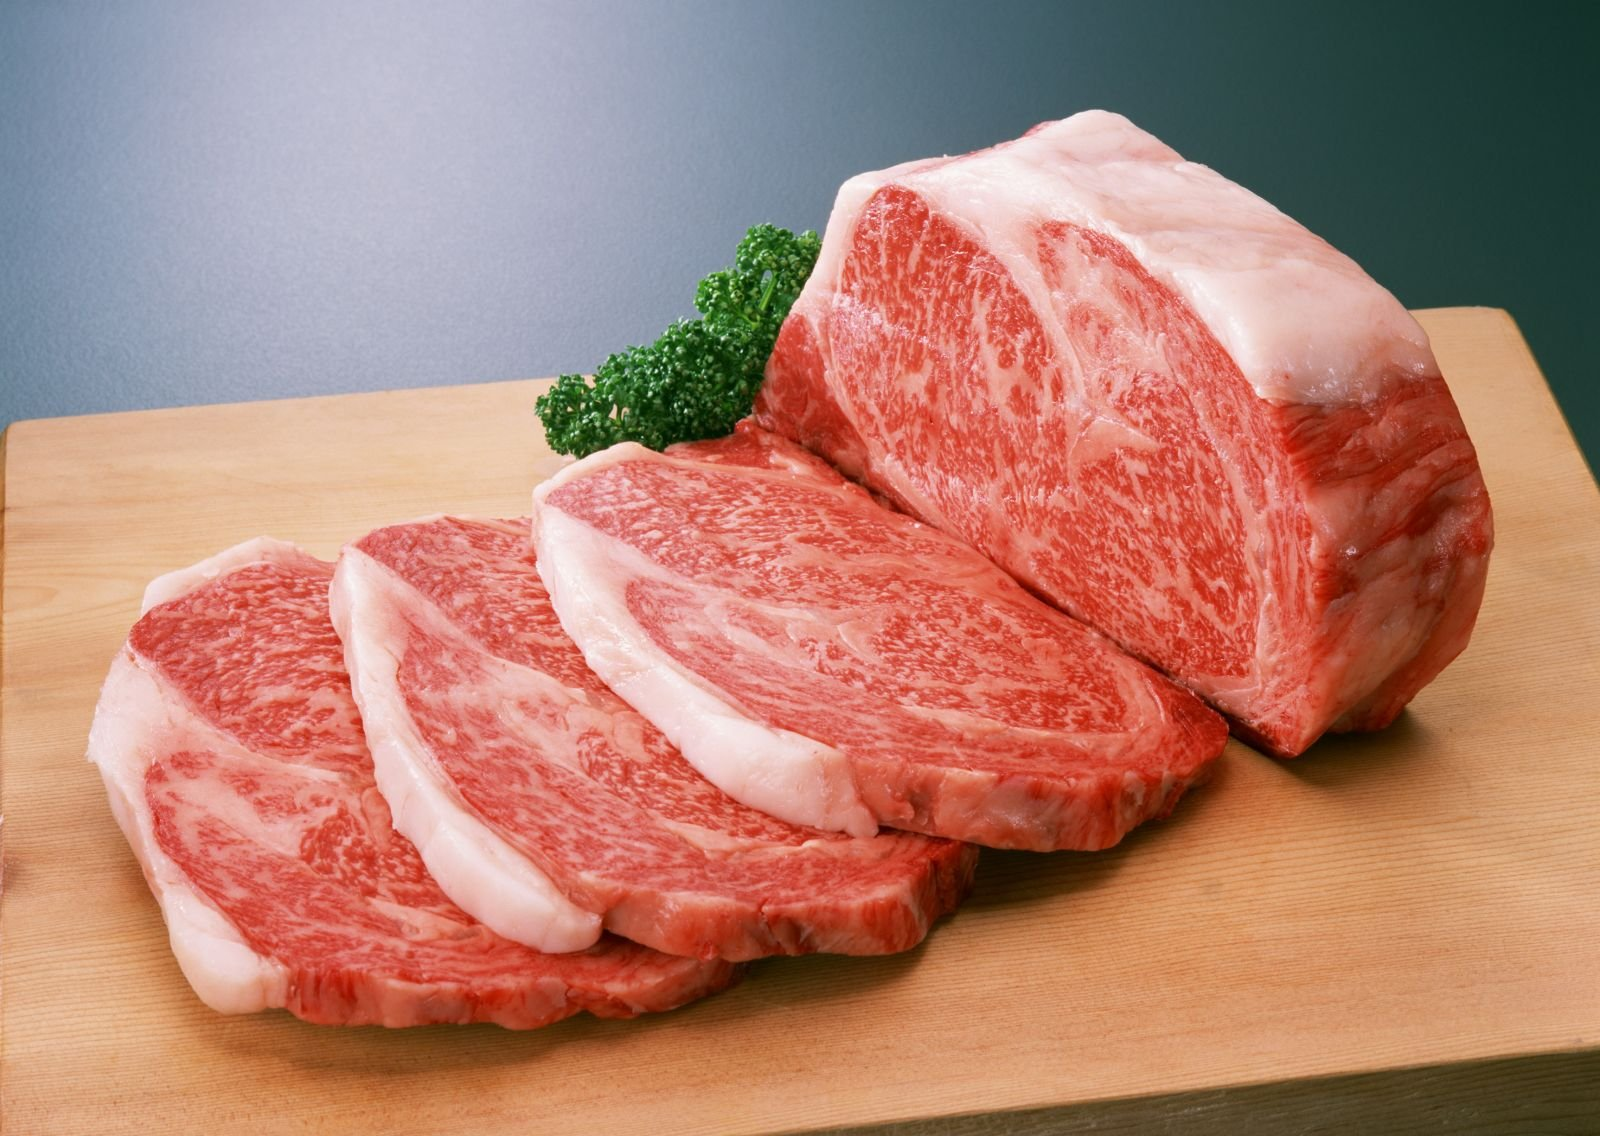 img 5a2b2008051cd.png?resize=1200,630 - 美味しく食べるコツは?牛肉の知識